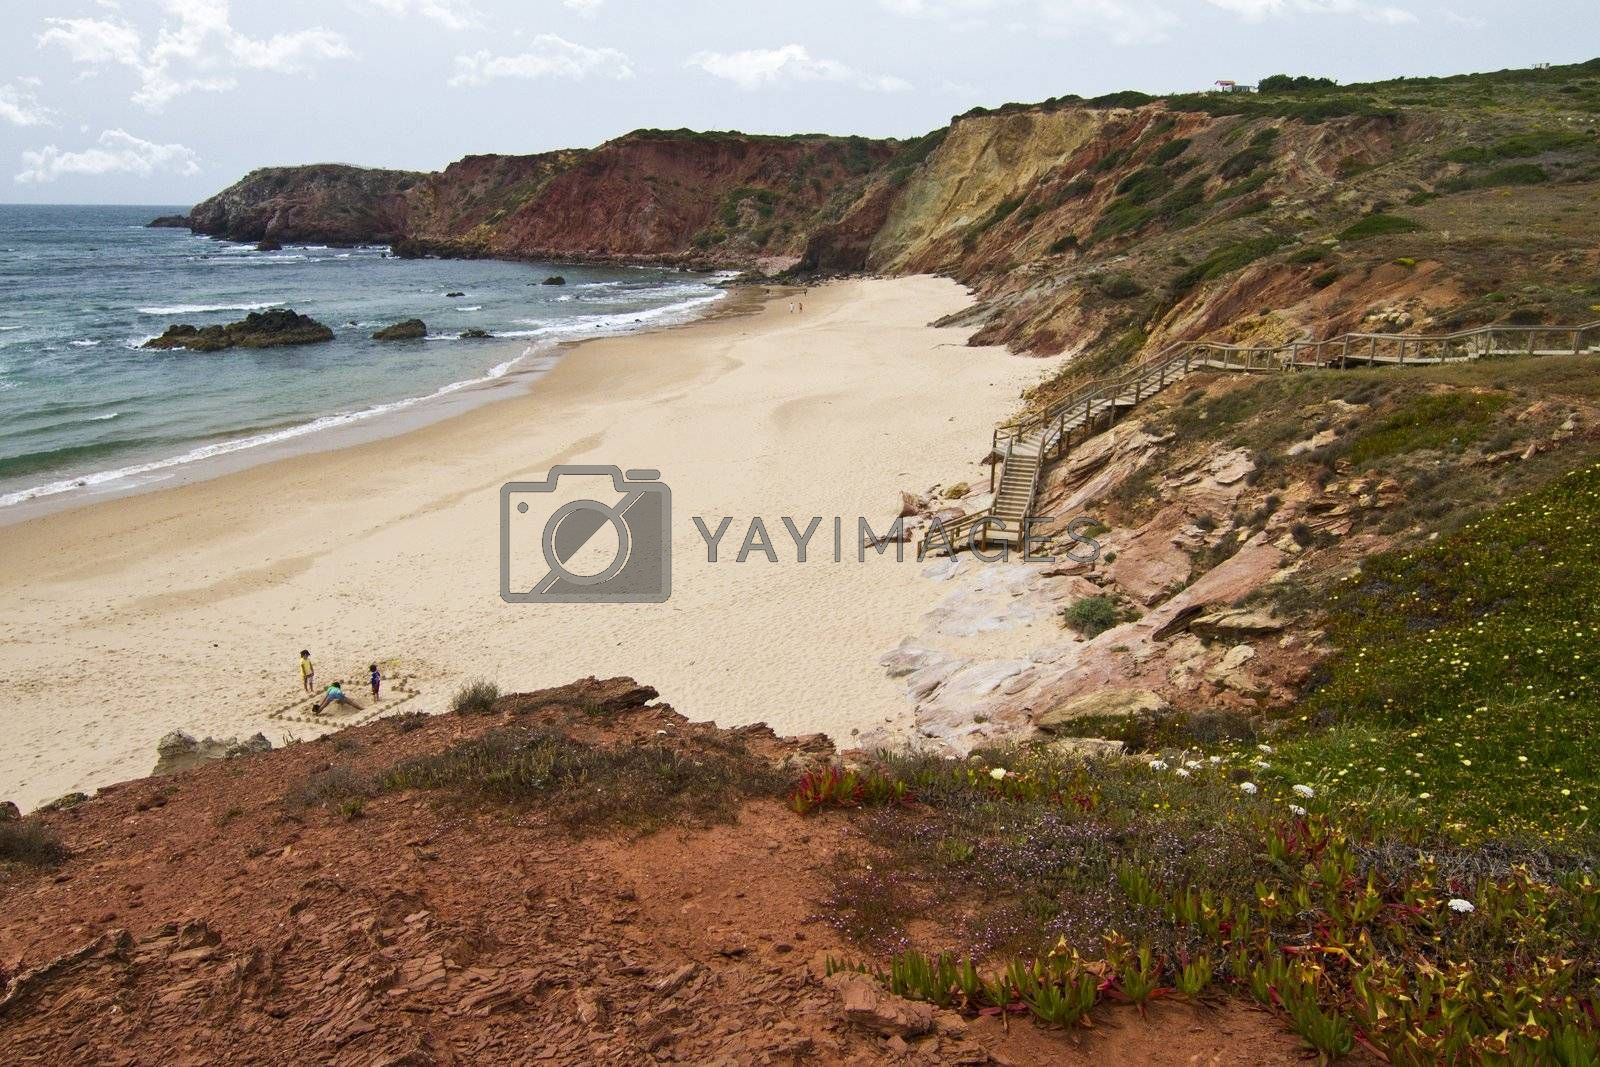 Beautiful view of the isolated beaches and coastline of Sagres, located in the Algarve, Portugal.